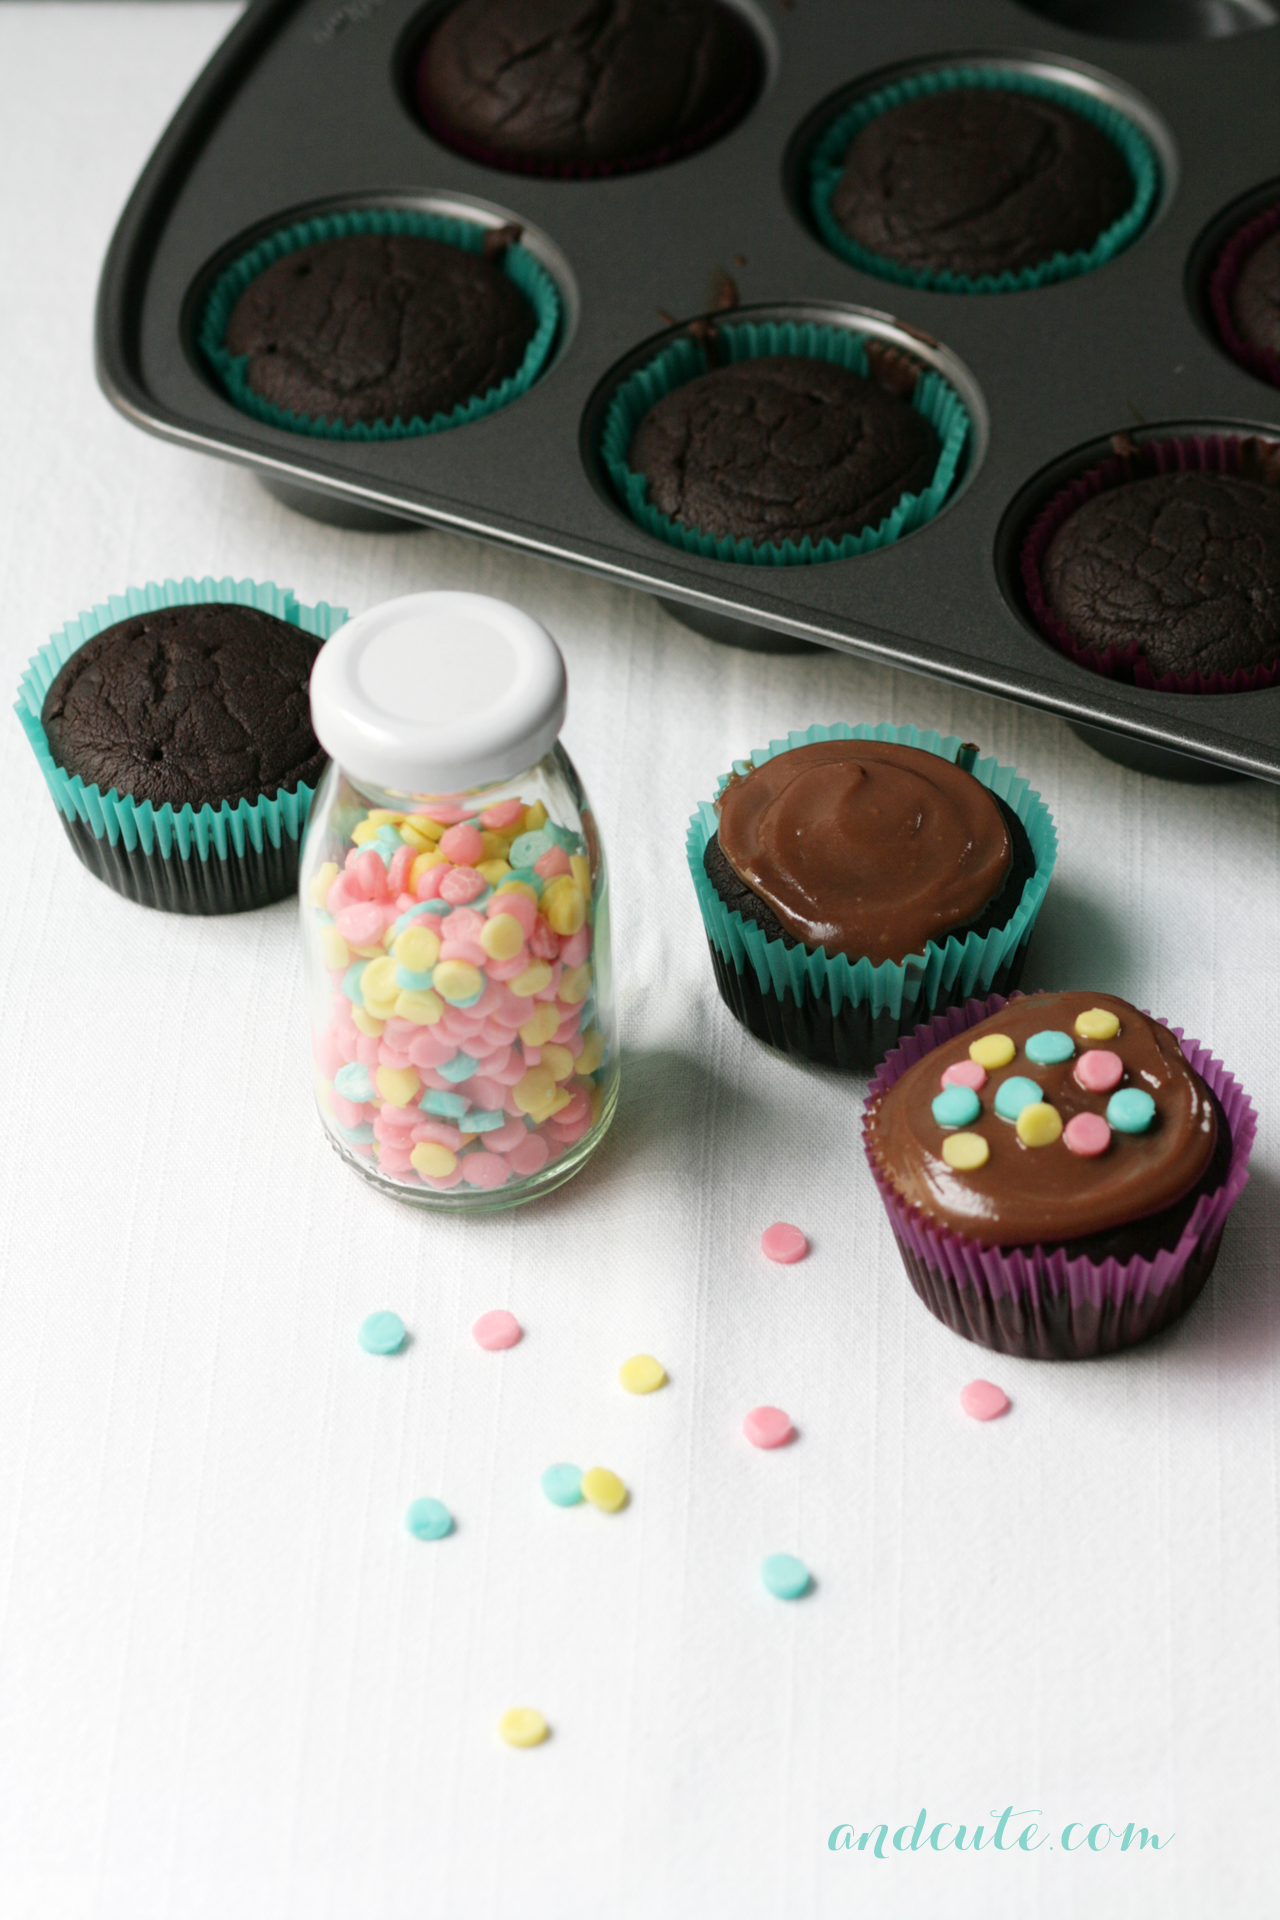 Cupcake Decorating with Confetti Sprinkles